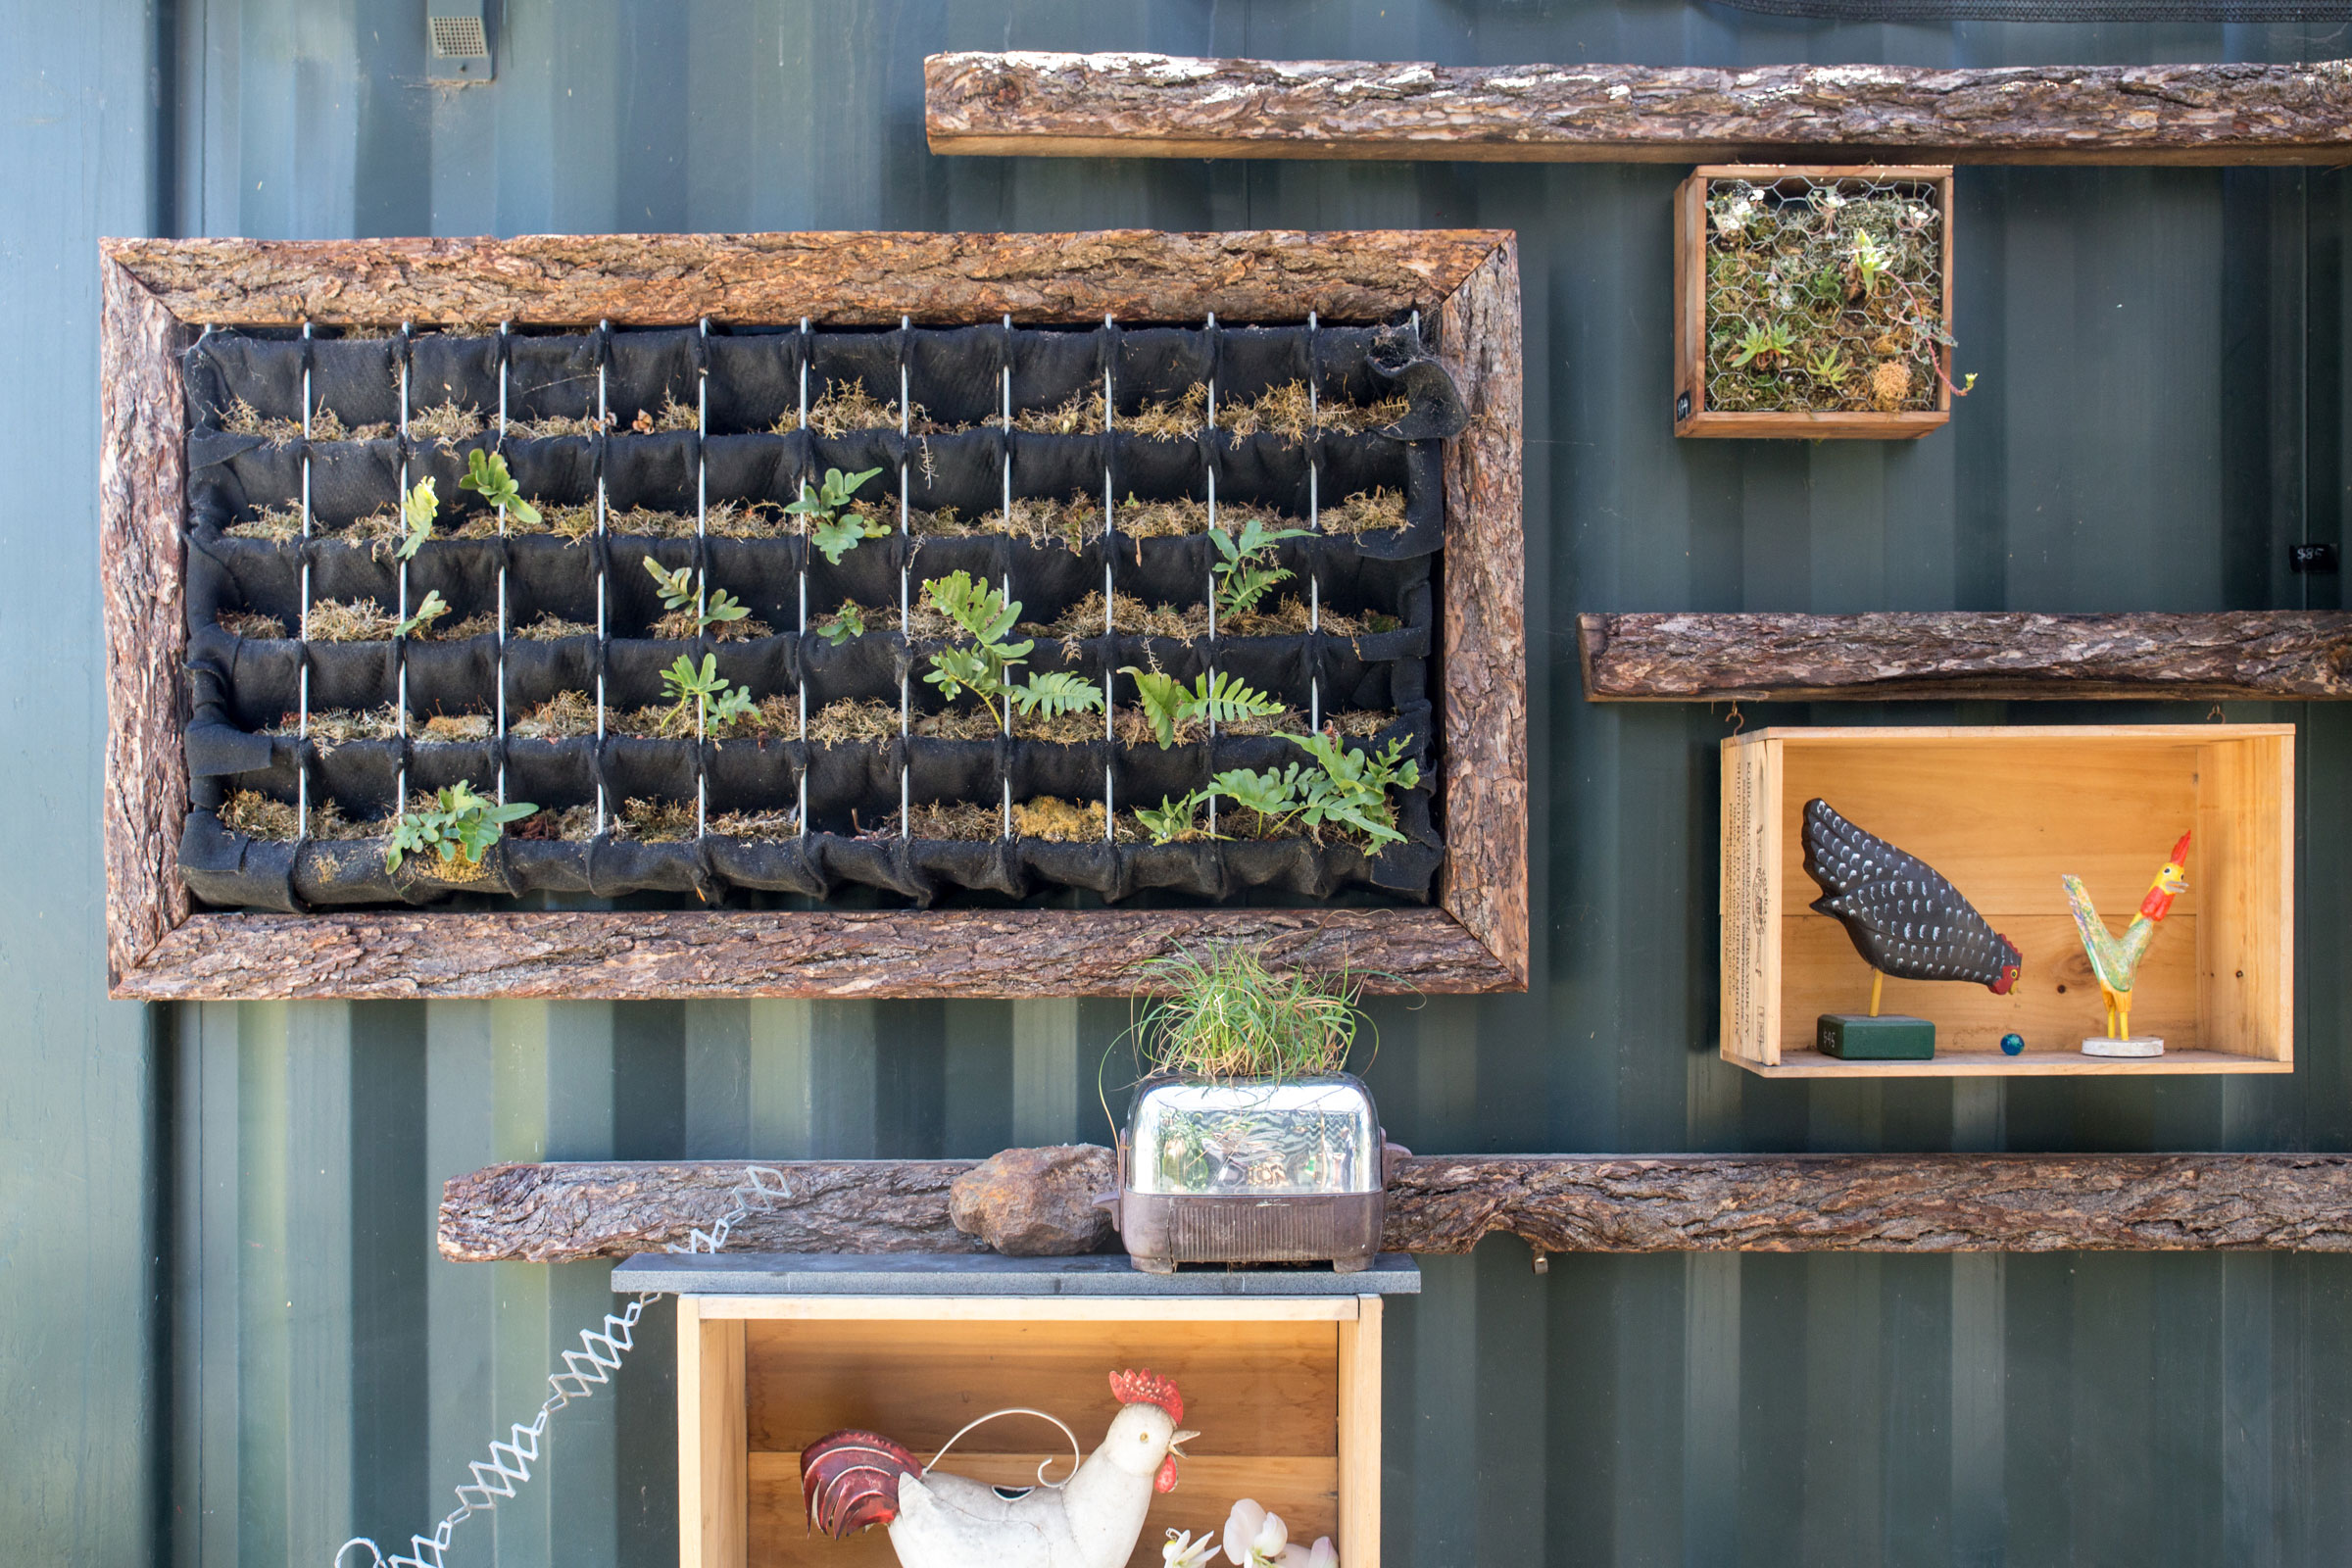 Creativity abounds in small spaces. Build a wall planter to optimize sunlight—or even plant in broken household appliances. Camilla Cerea/Audubon